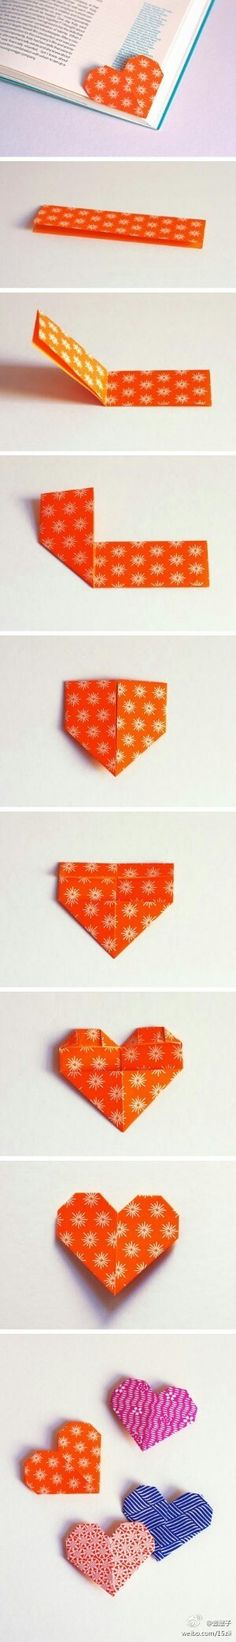 Bookmark diy